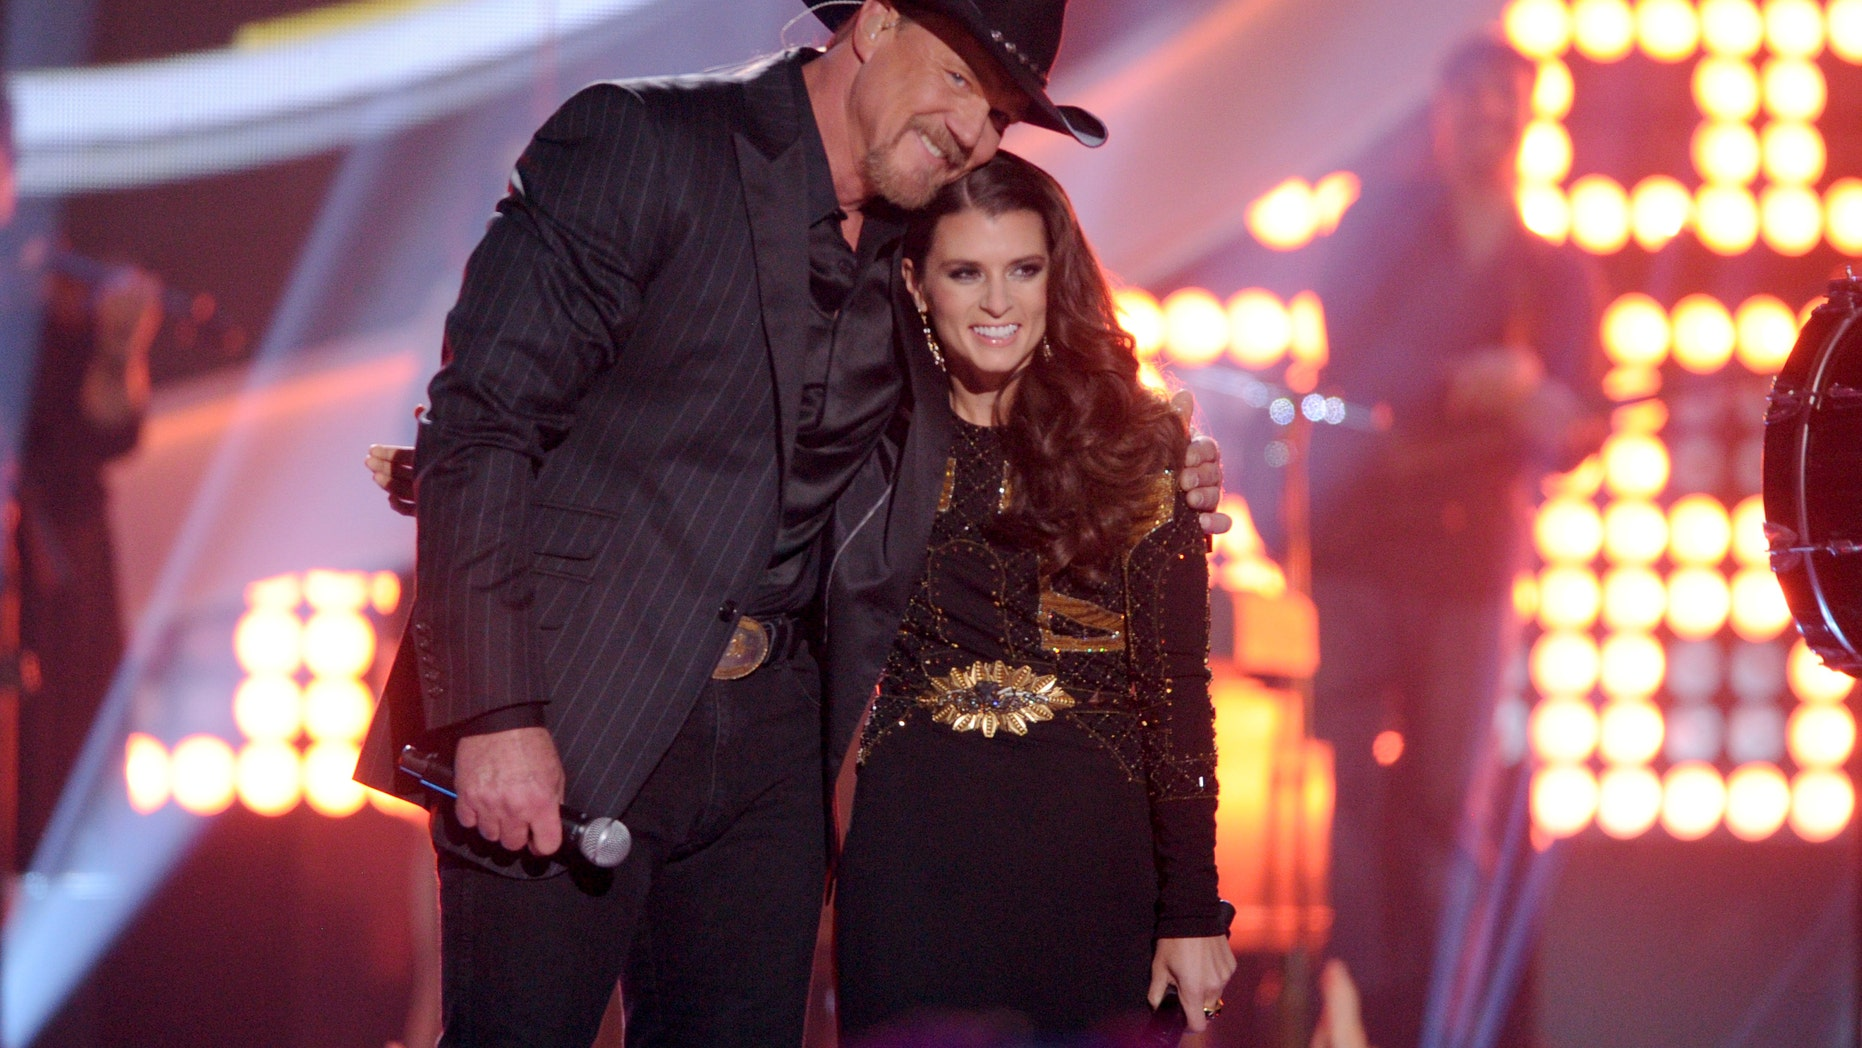 Trace Adkins, left, and Danica Patrick speak on stage at the American Country Awards at the Mandalay Bay Resort & Casino on Tuesday, Dec. 10, 2013, in Las Vegas.